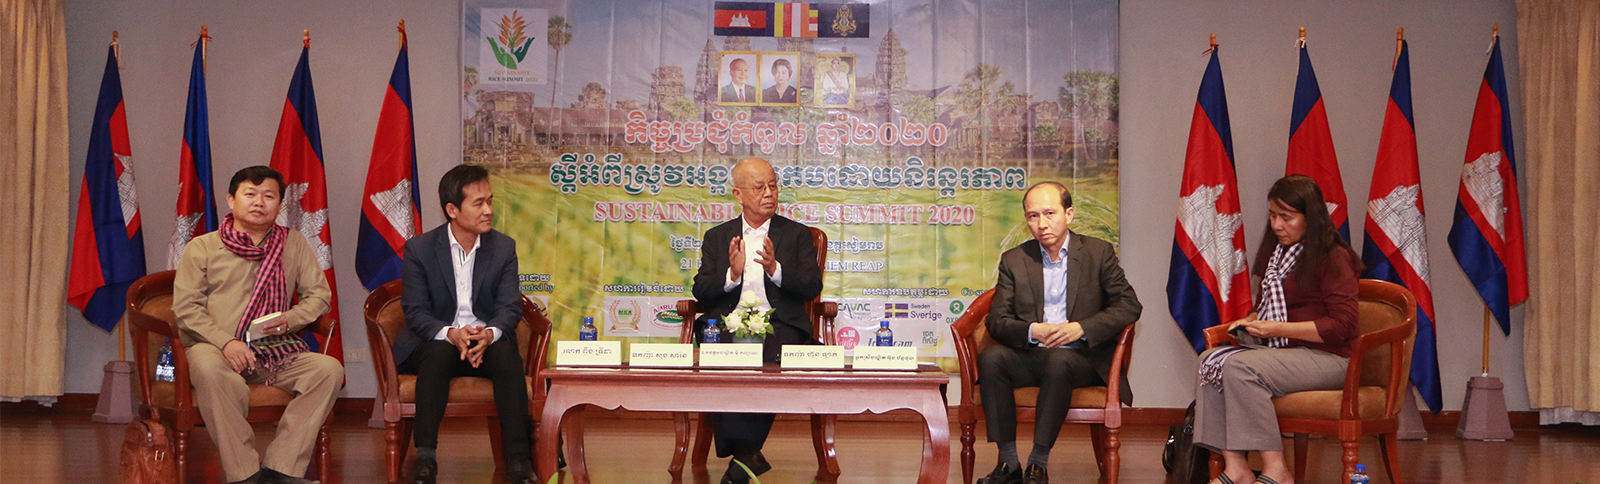 Sustainable Rice Summit in Siem Reap Province- 21 February 2020